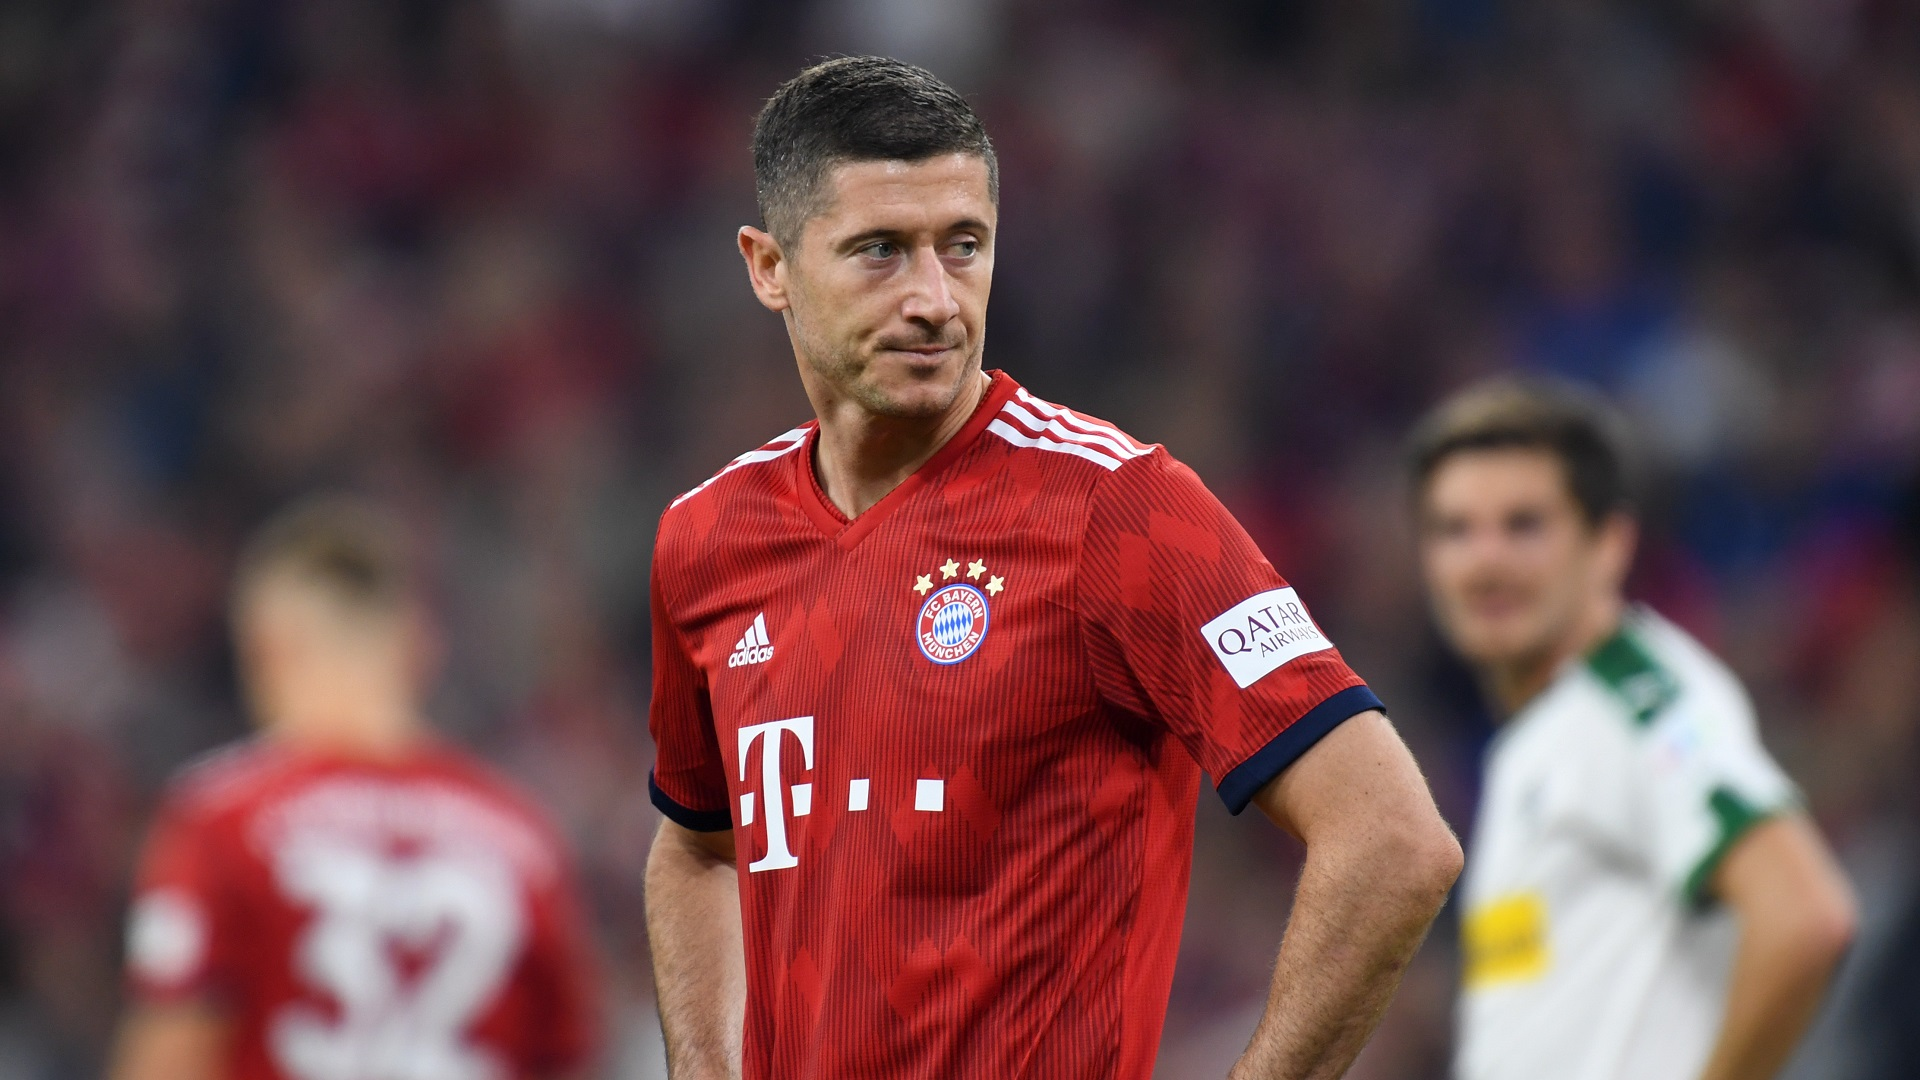 Bayern Munich accuse media of 'derogatory and derisive reporting'